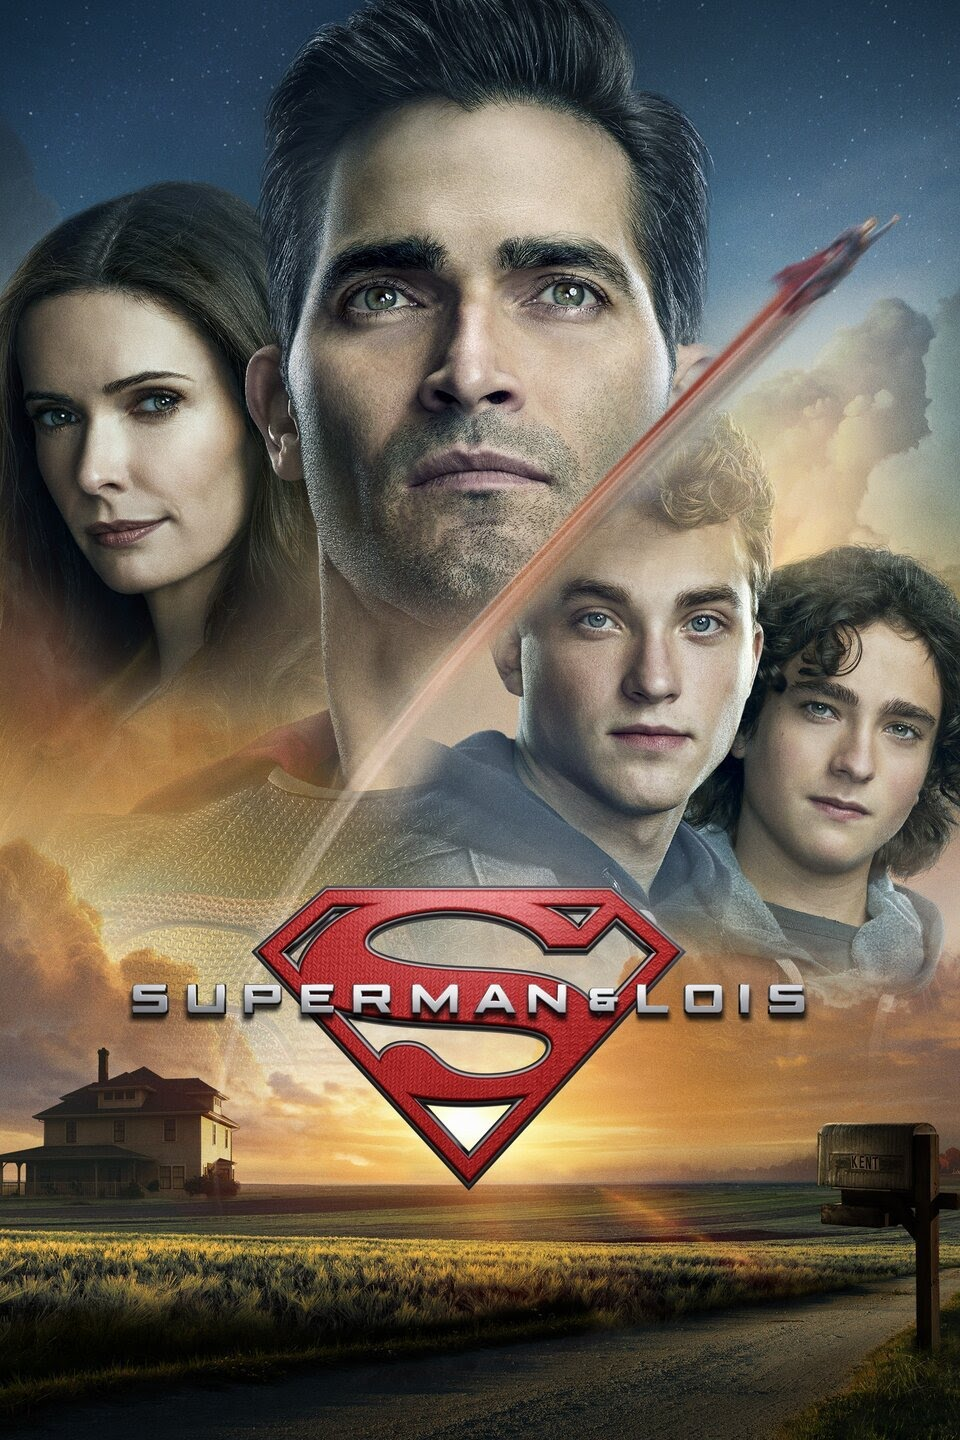 Superman and Lois Season 1 Episode 2 Movie Series Subtitles DOWNLOAD